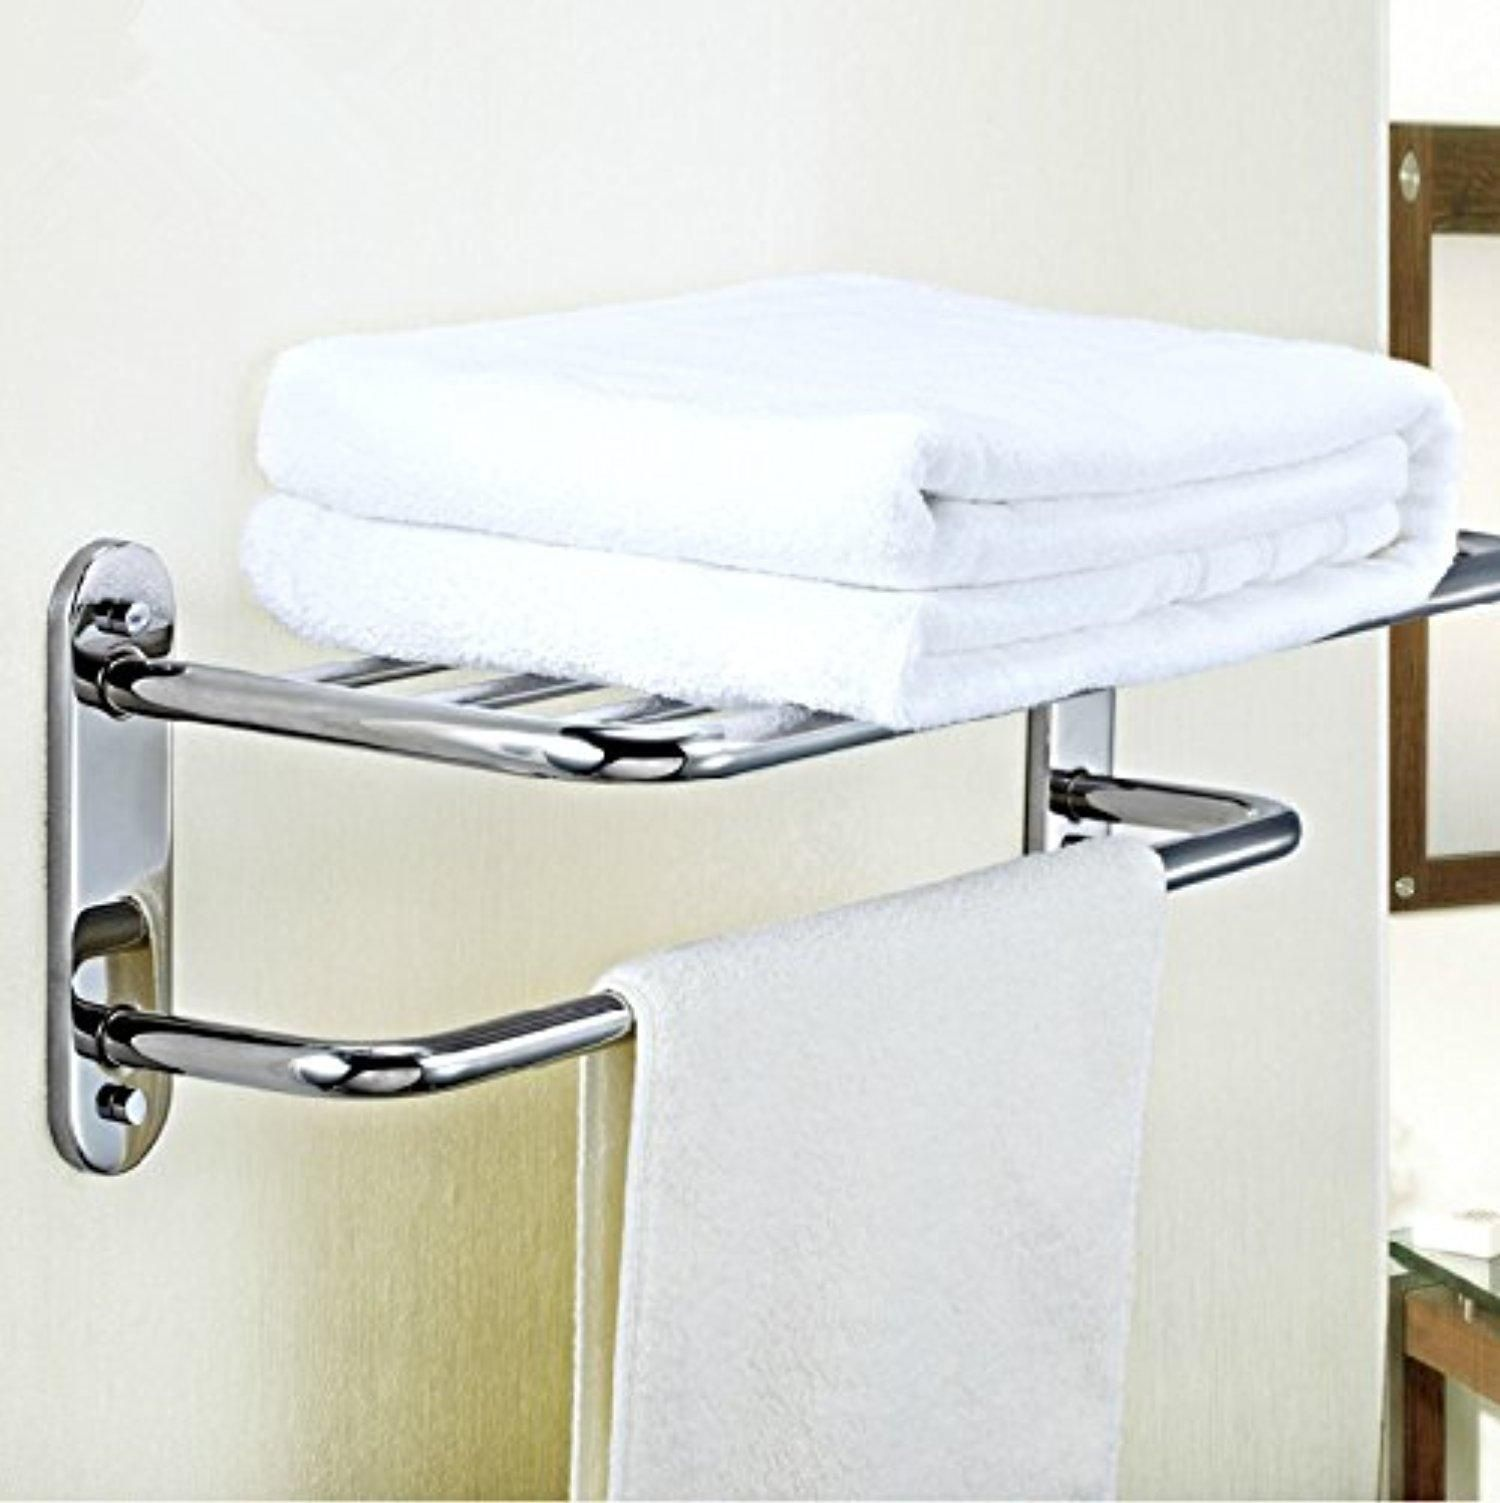 Towel Bar Holder For Bathroom Or Kitchen Organize It All Shelf With